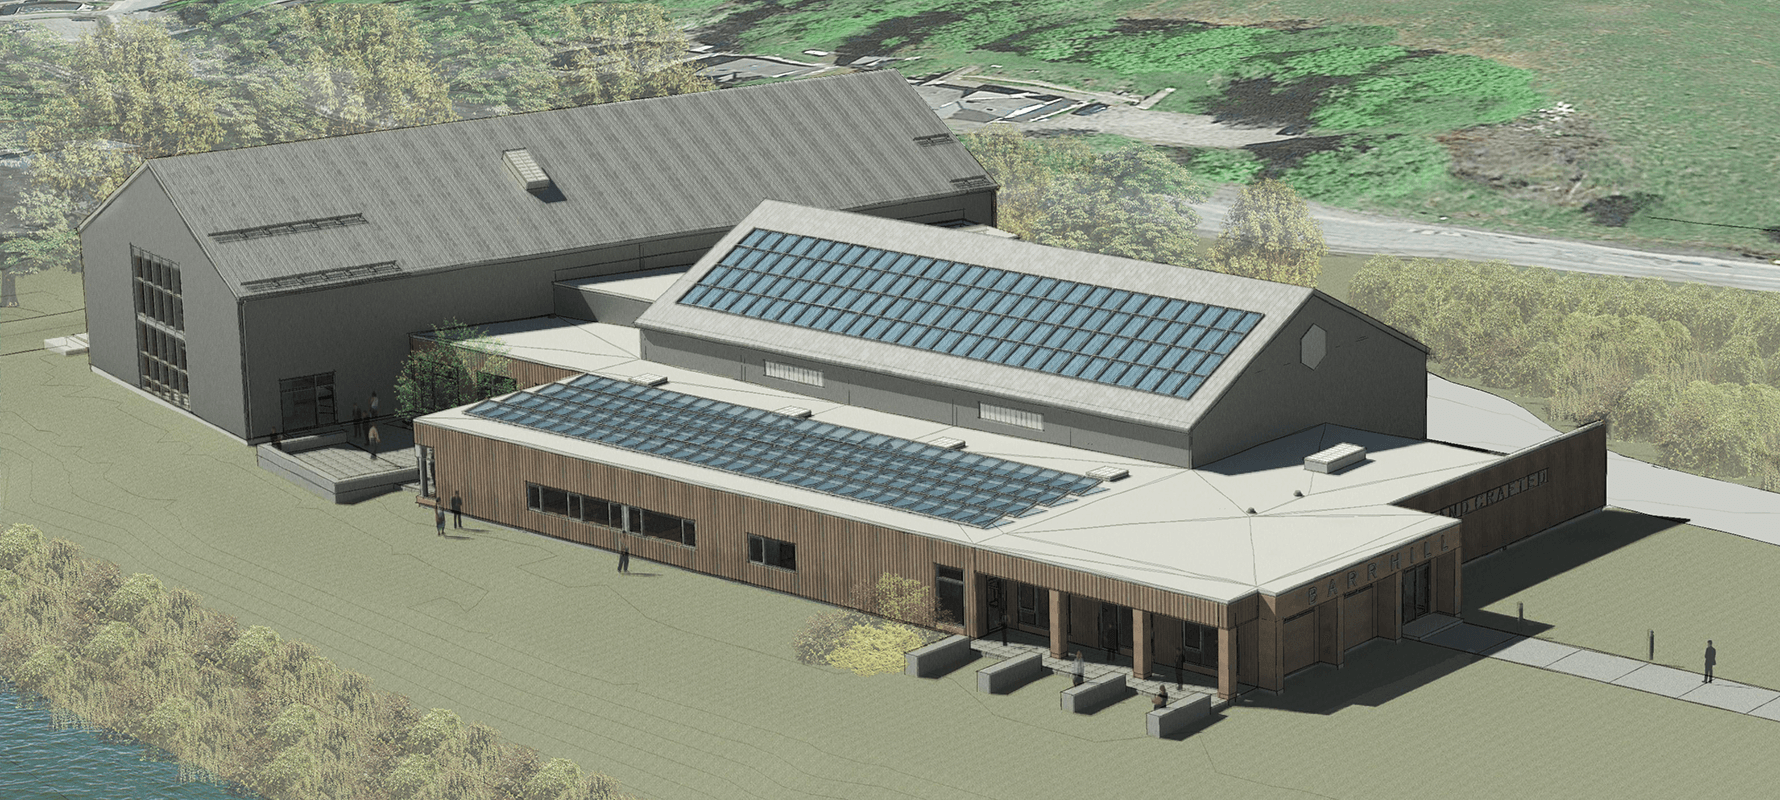 Image of the new distillery at Barr Hill Gin